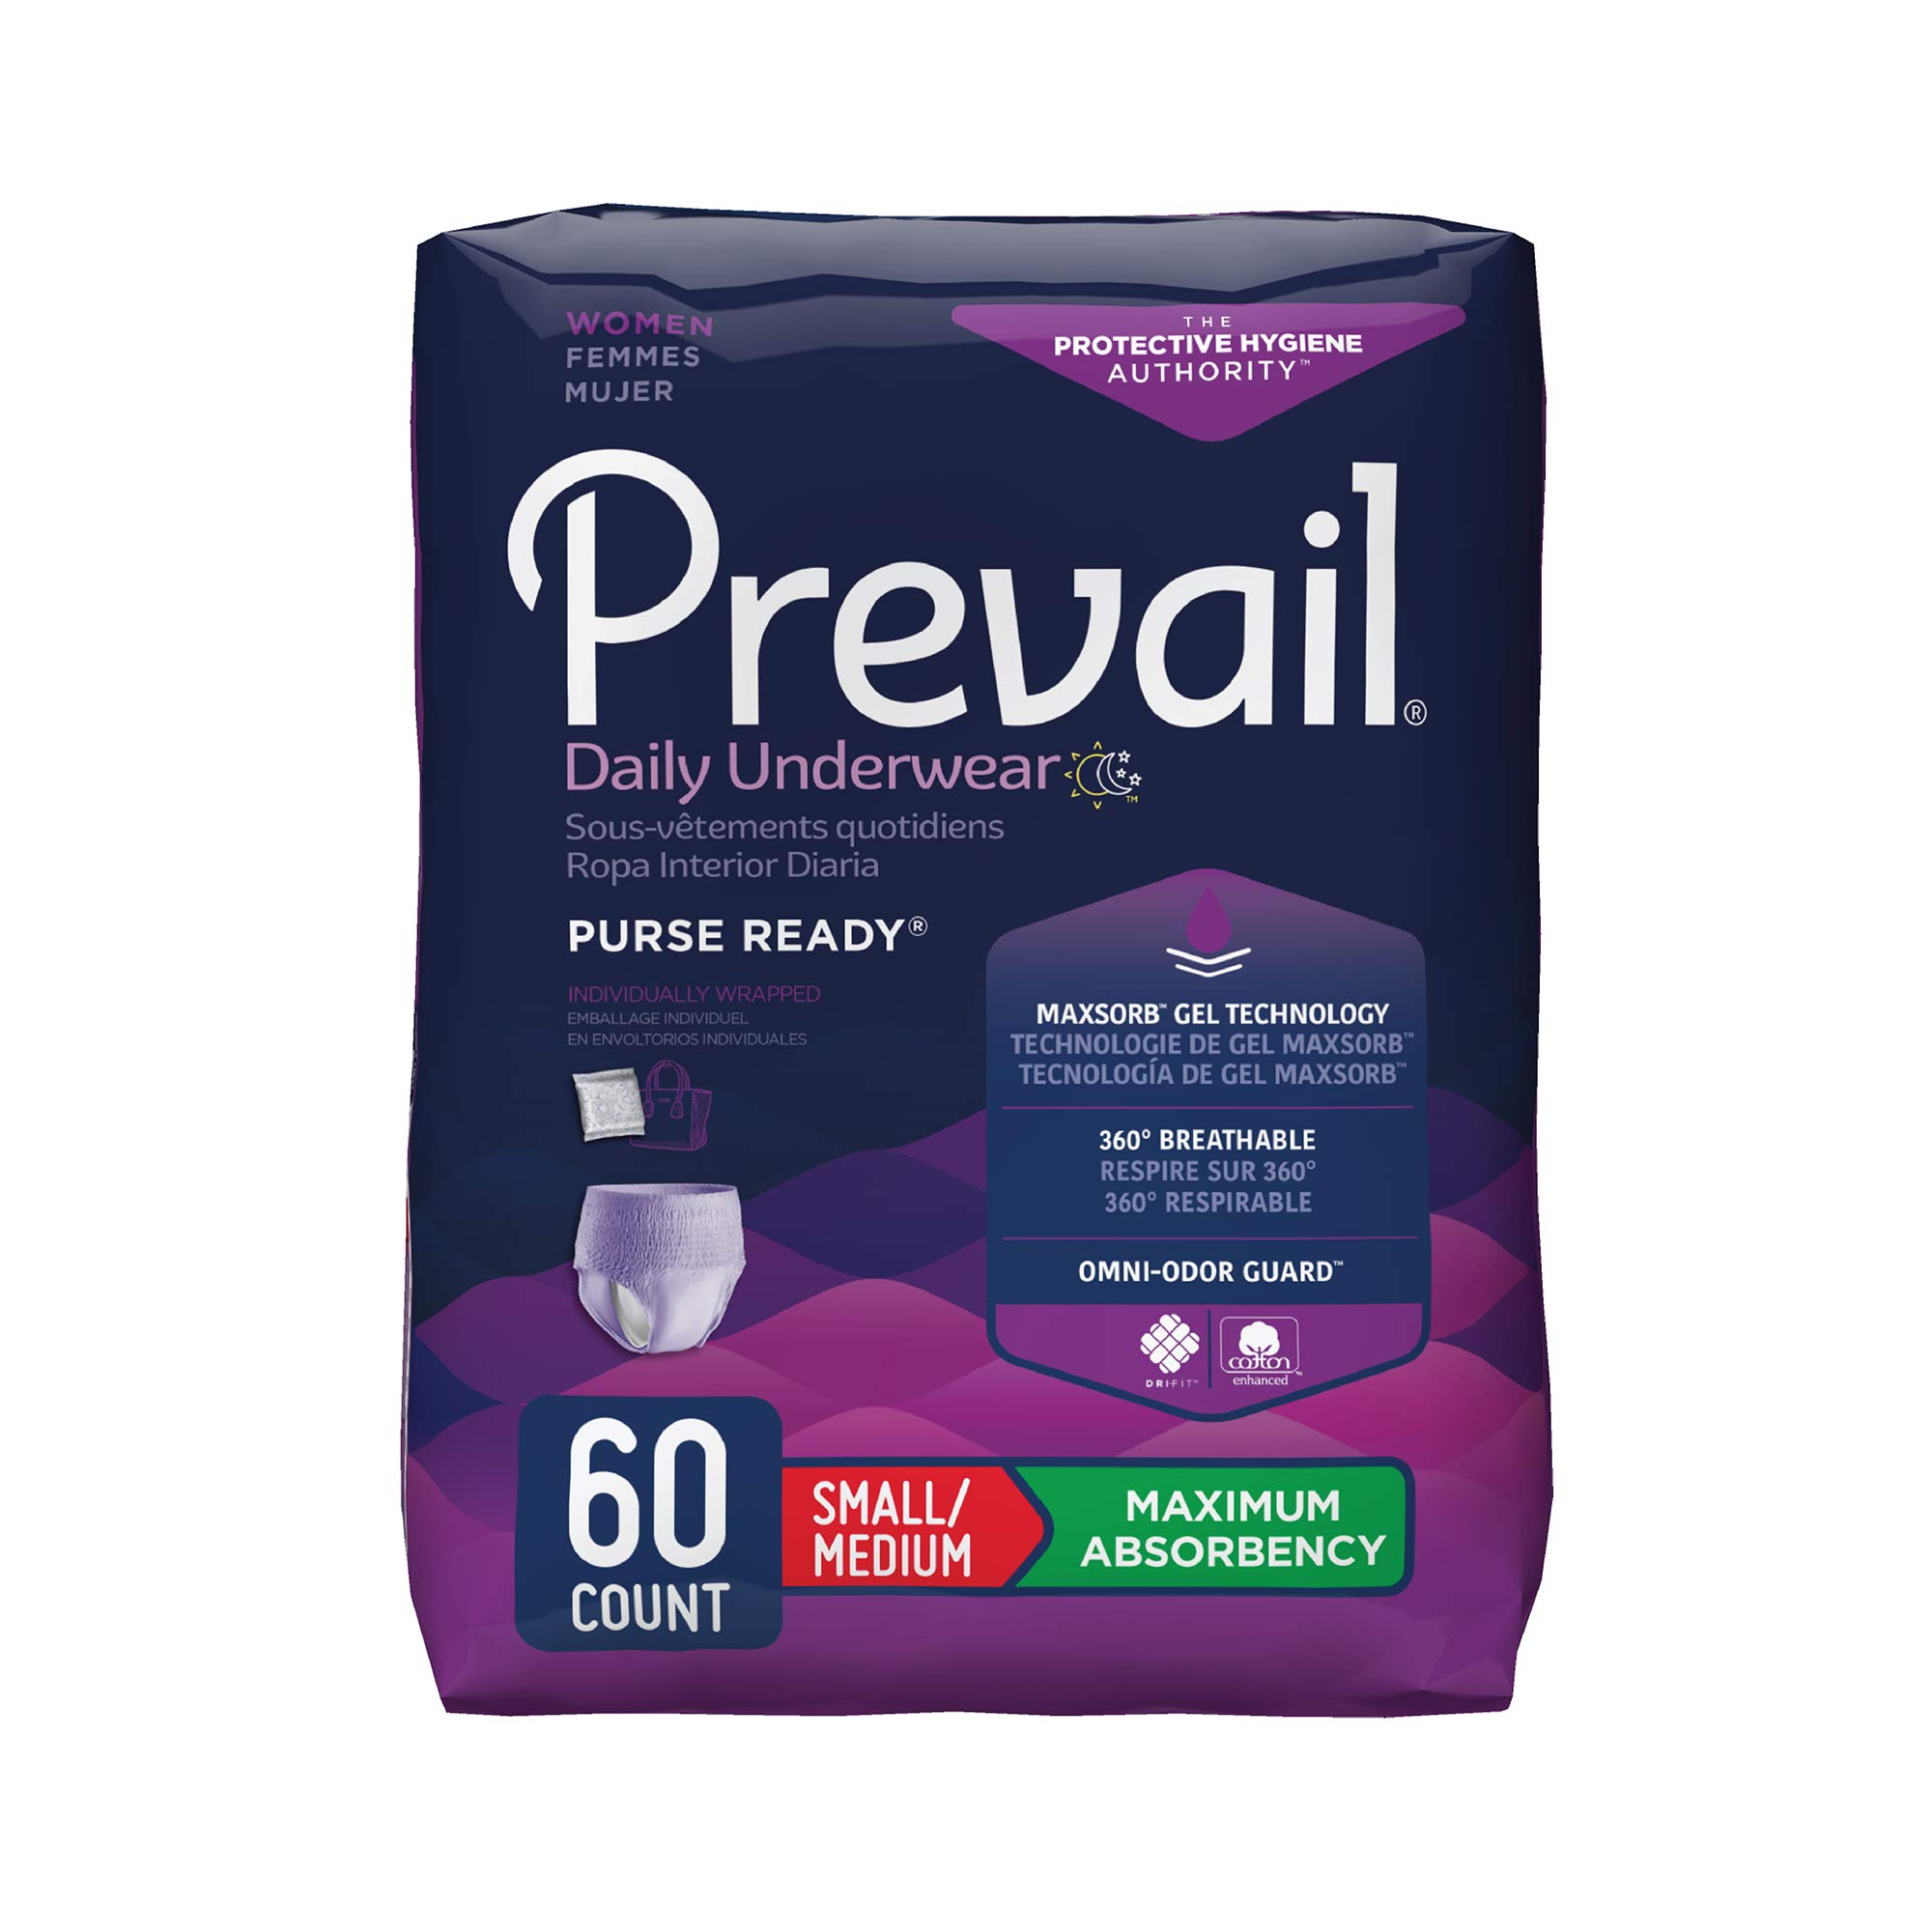 Prevail Maximum Absorbency Incontinence Underwear for Women, Small/Medium, 60 Count by Prevail